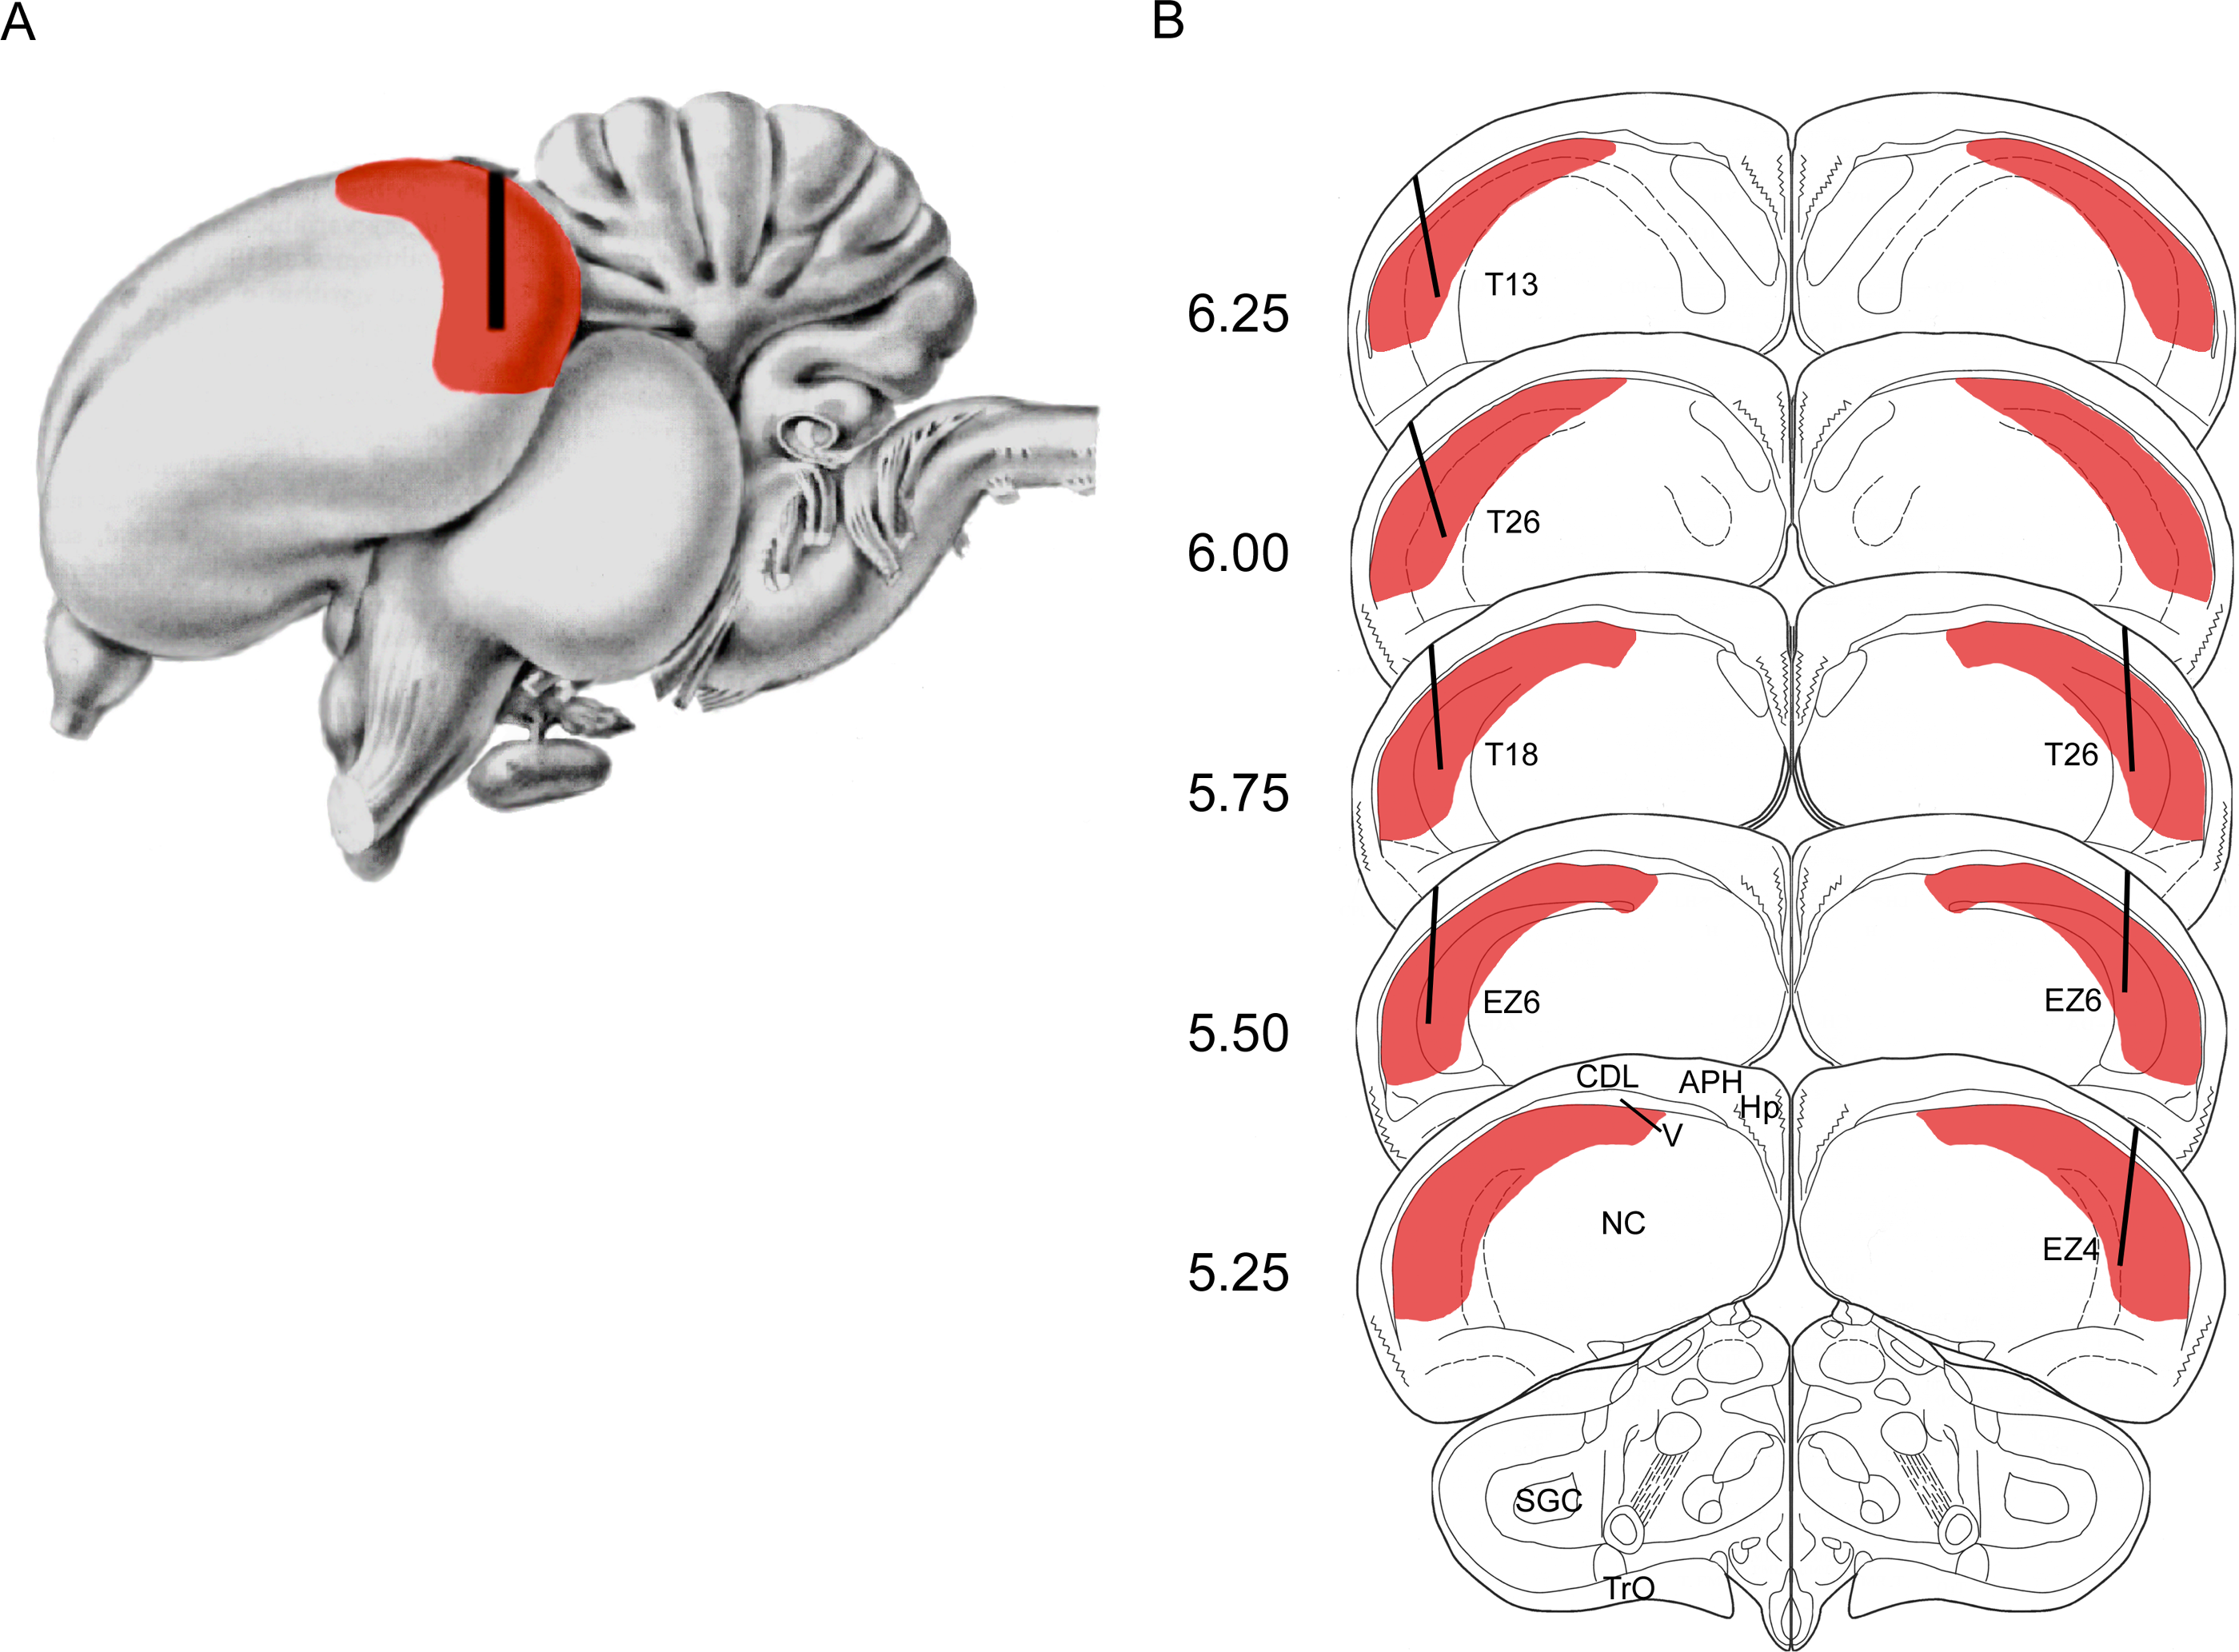 File:Hippocampus-Bird brain.png - Wikimedia Commons